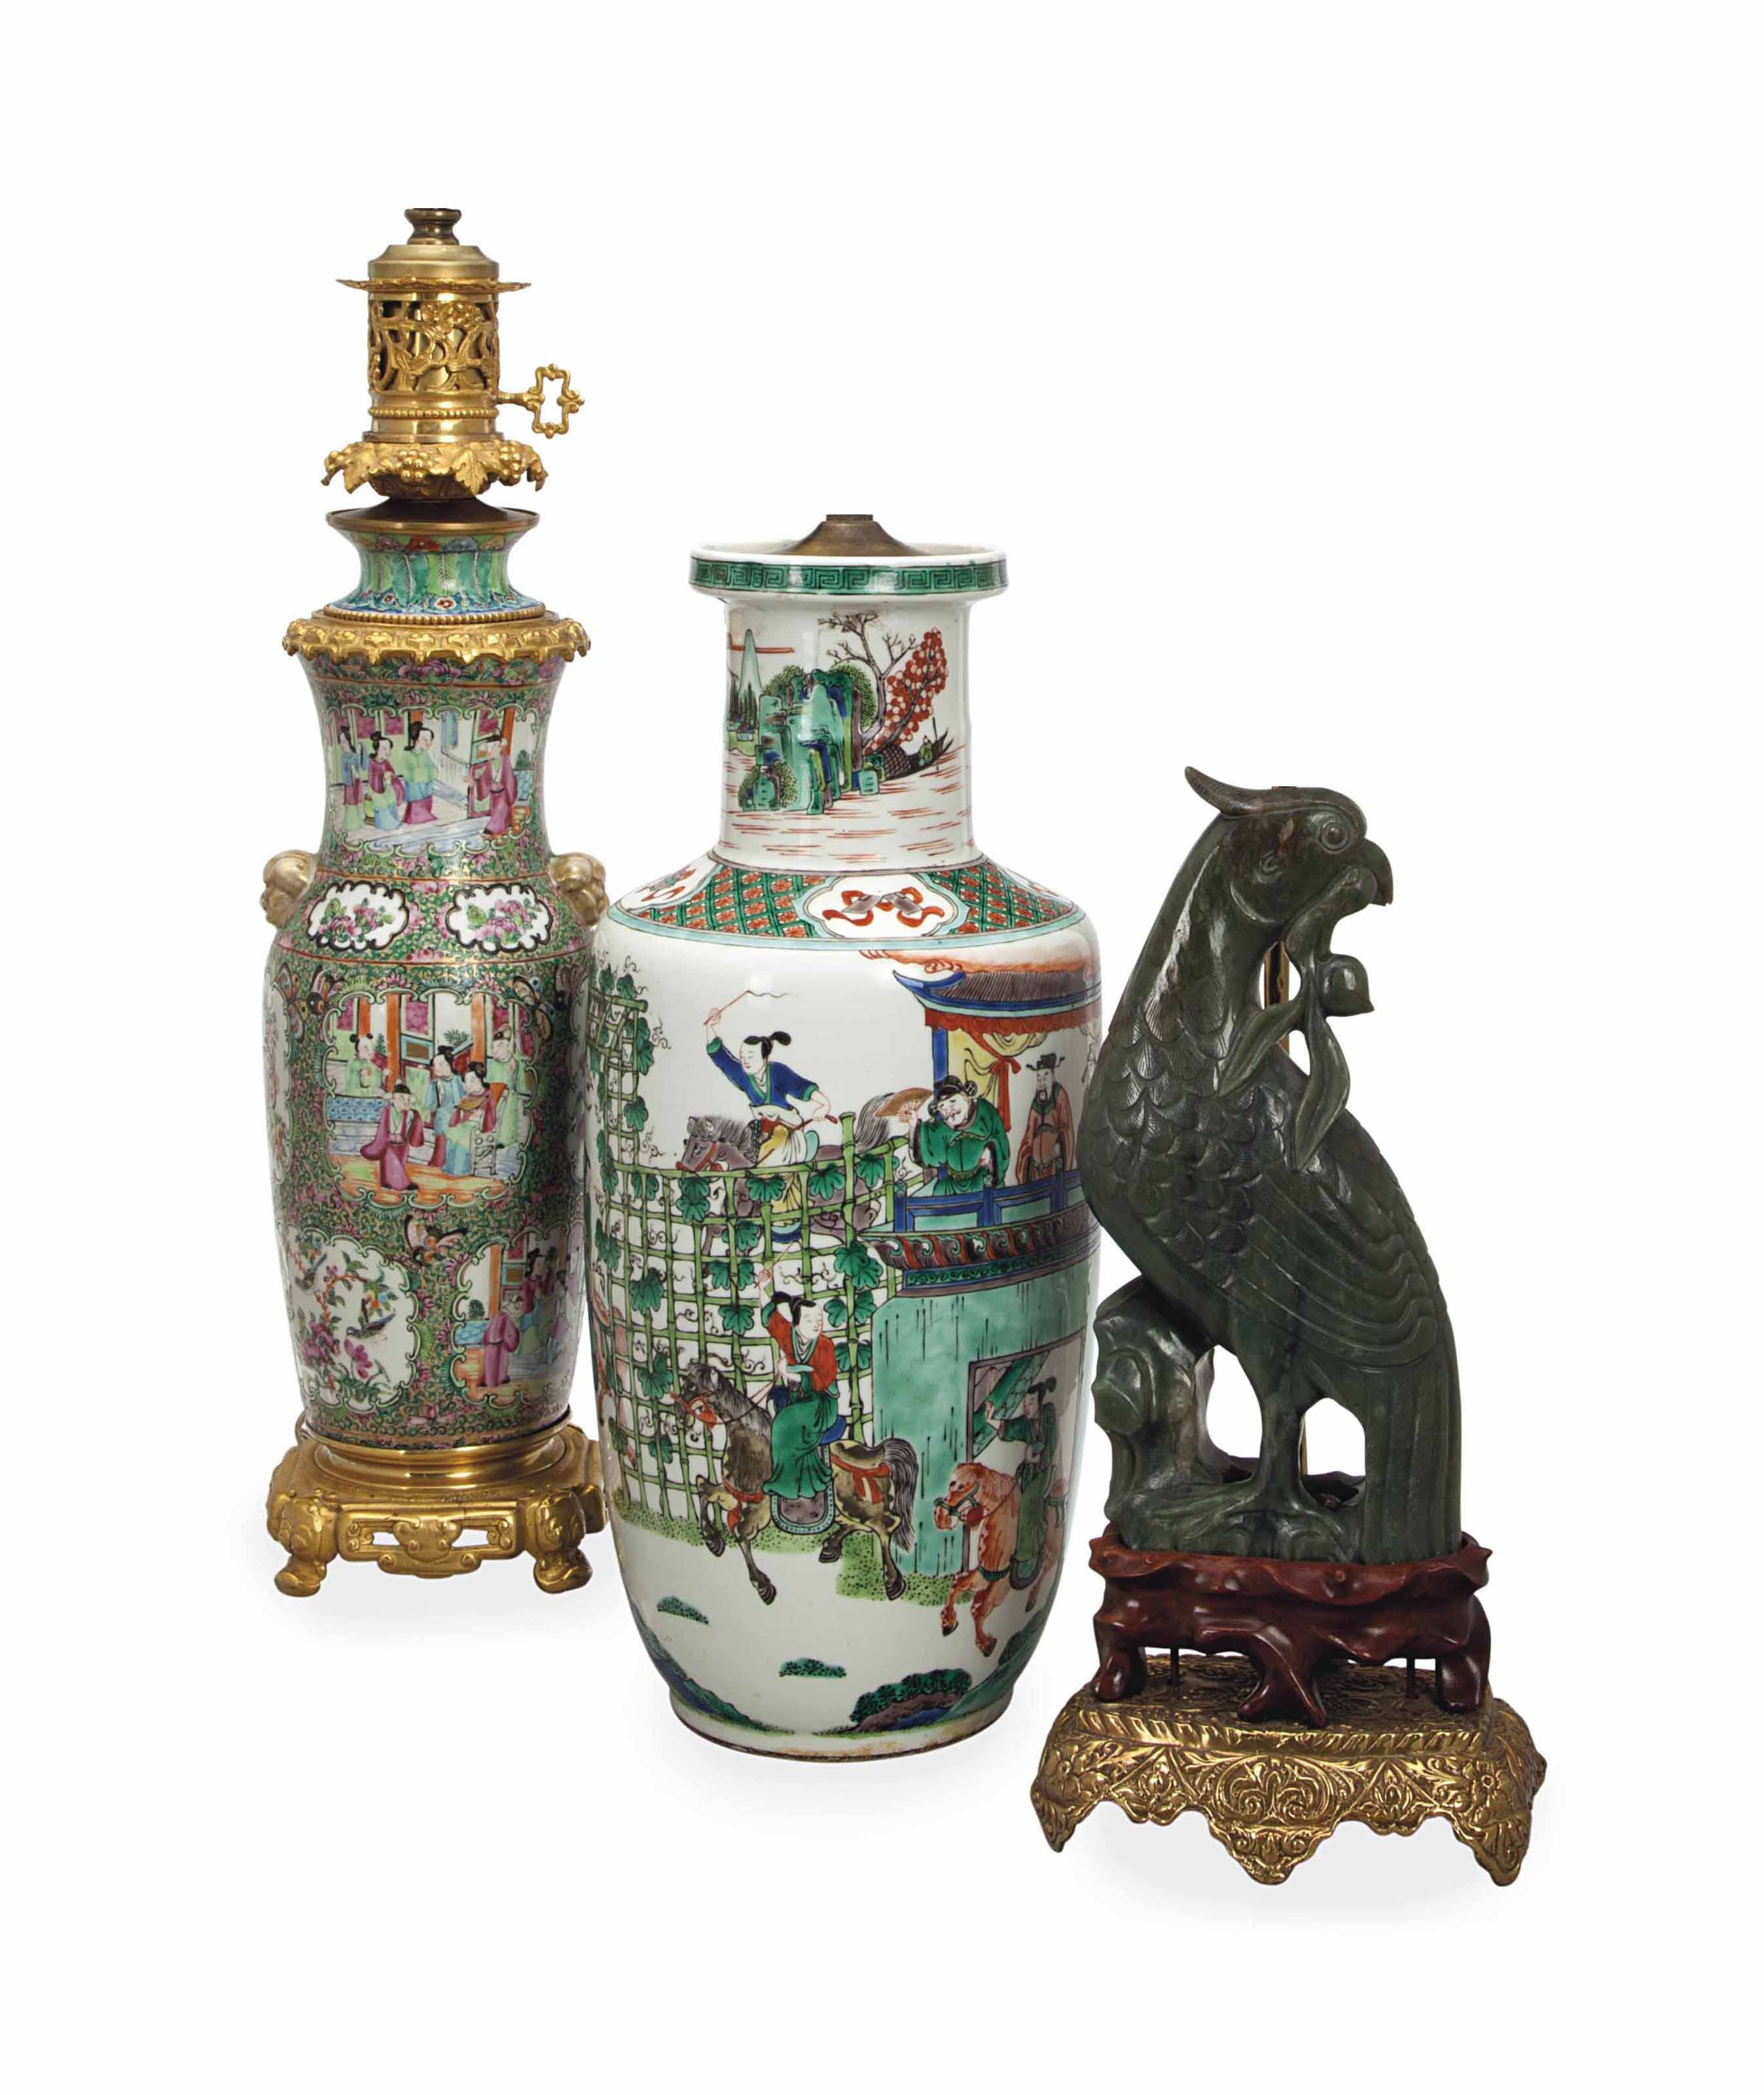 TWO CHINESE DECORATIVE OBJECTS